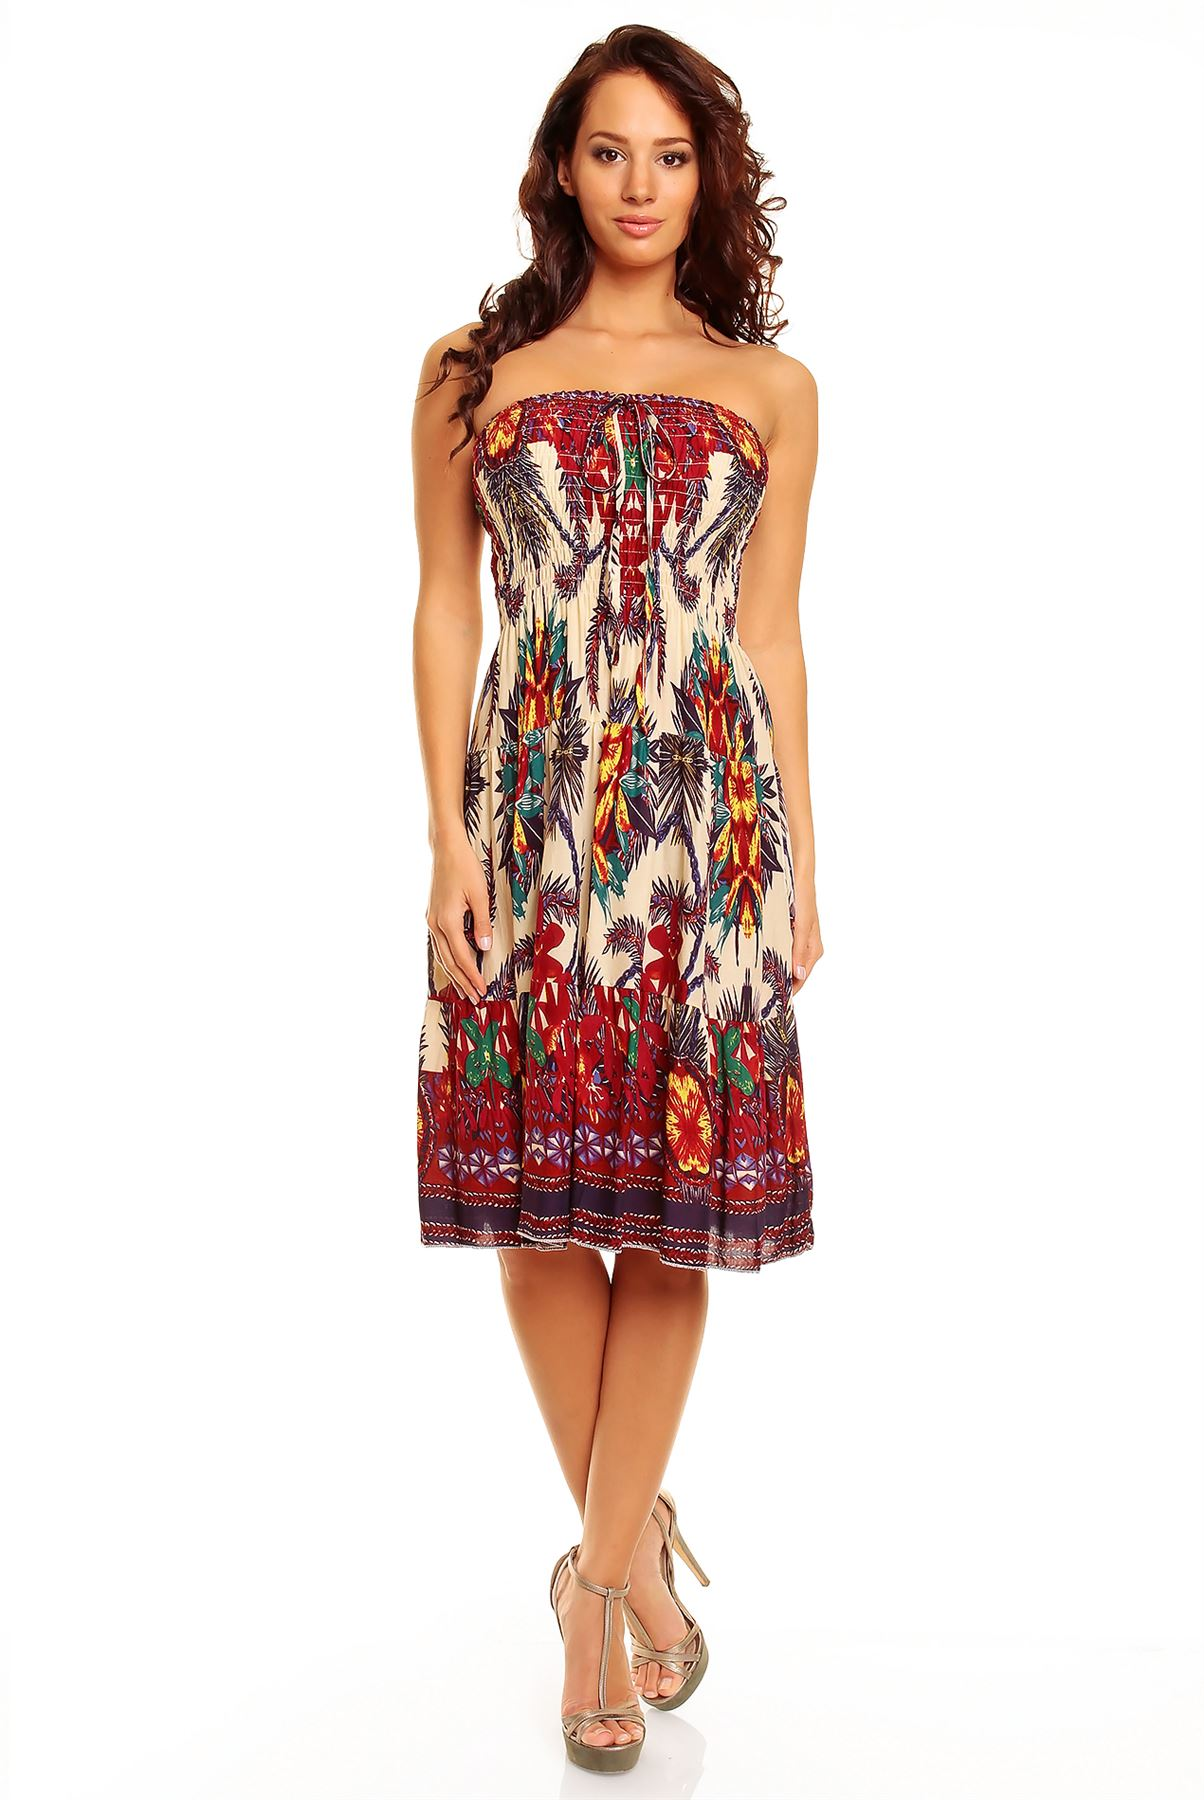 This delightful midi day dress from RACHEL Rachel Roy features a sexy surplice V-neck that'll have you flaunting your fabulous figure. You'll pop in the bright, confident color and the fun flounce sleeves that are so trendy!